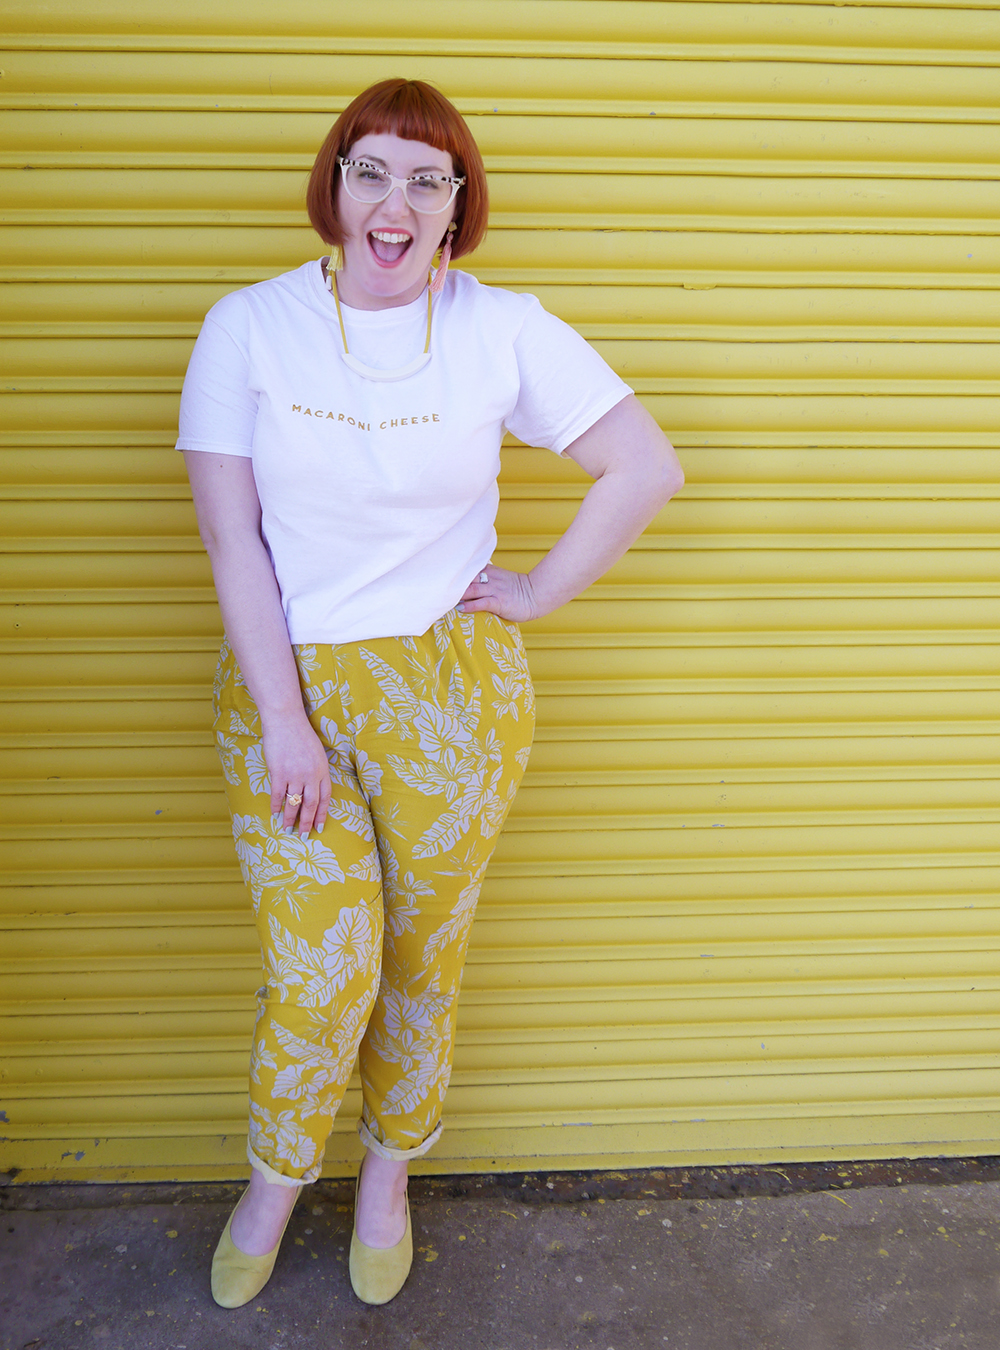 Scottish Blogger Helen of Wardrobe Coversations embraces sunshine in a yellow outfit